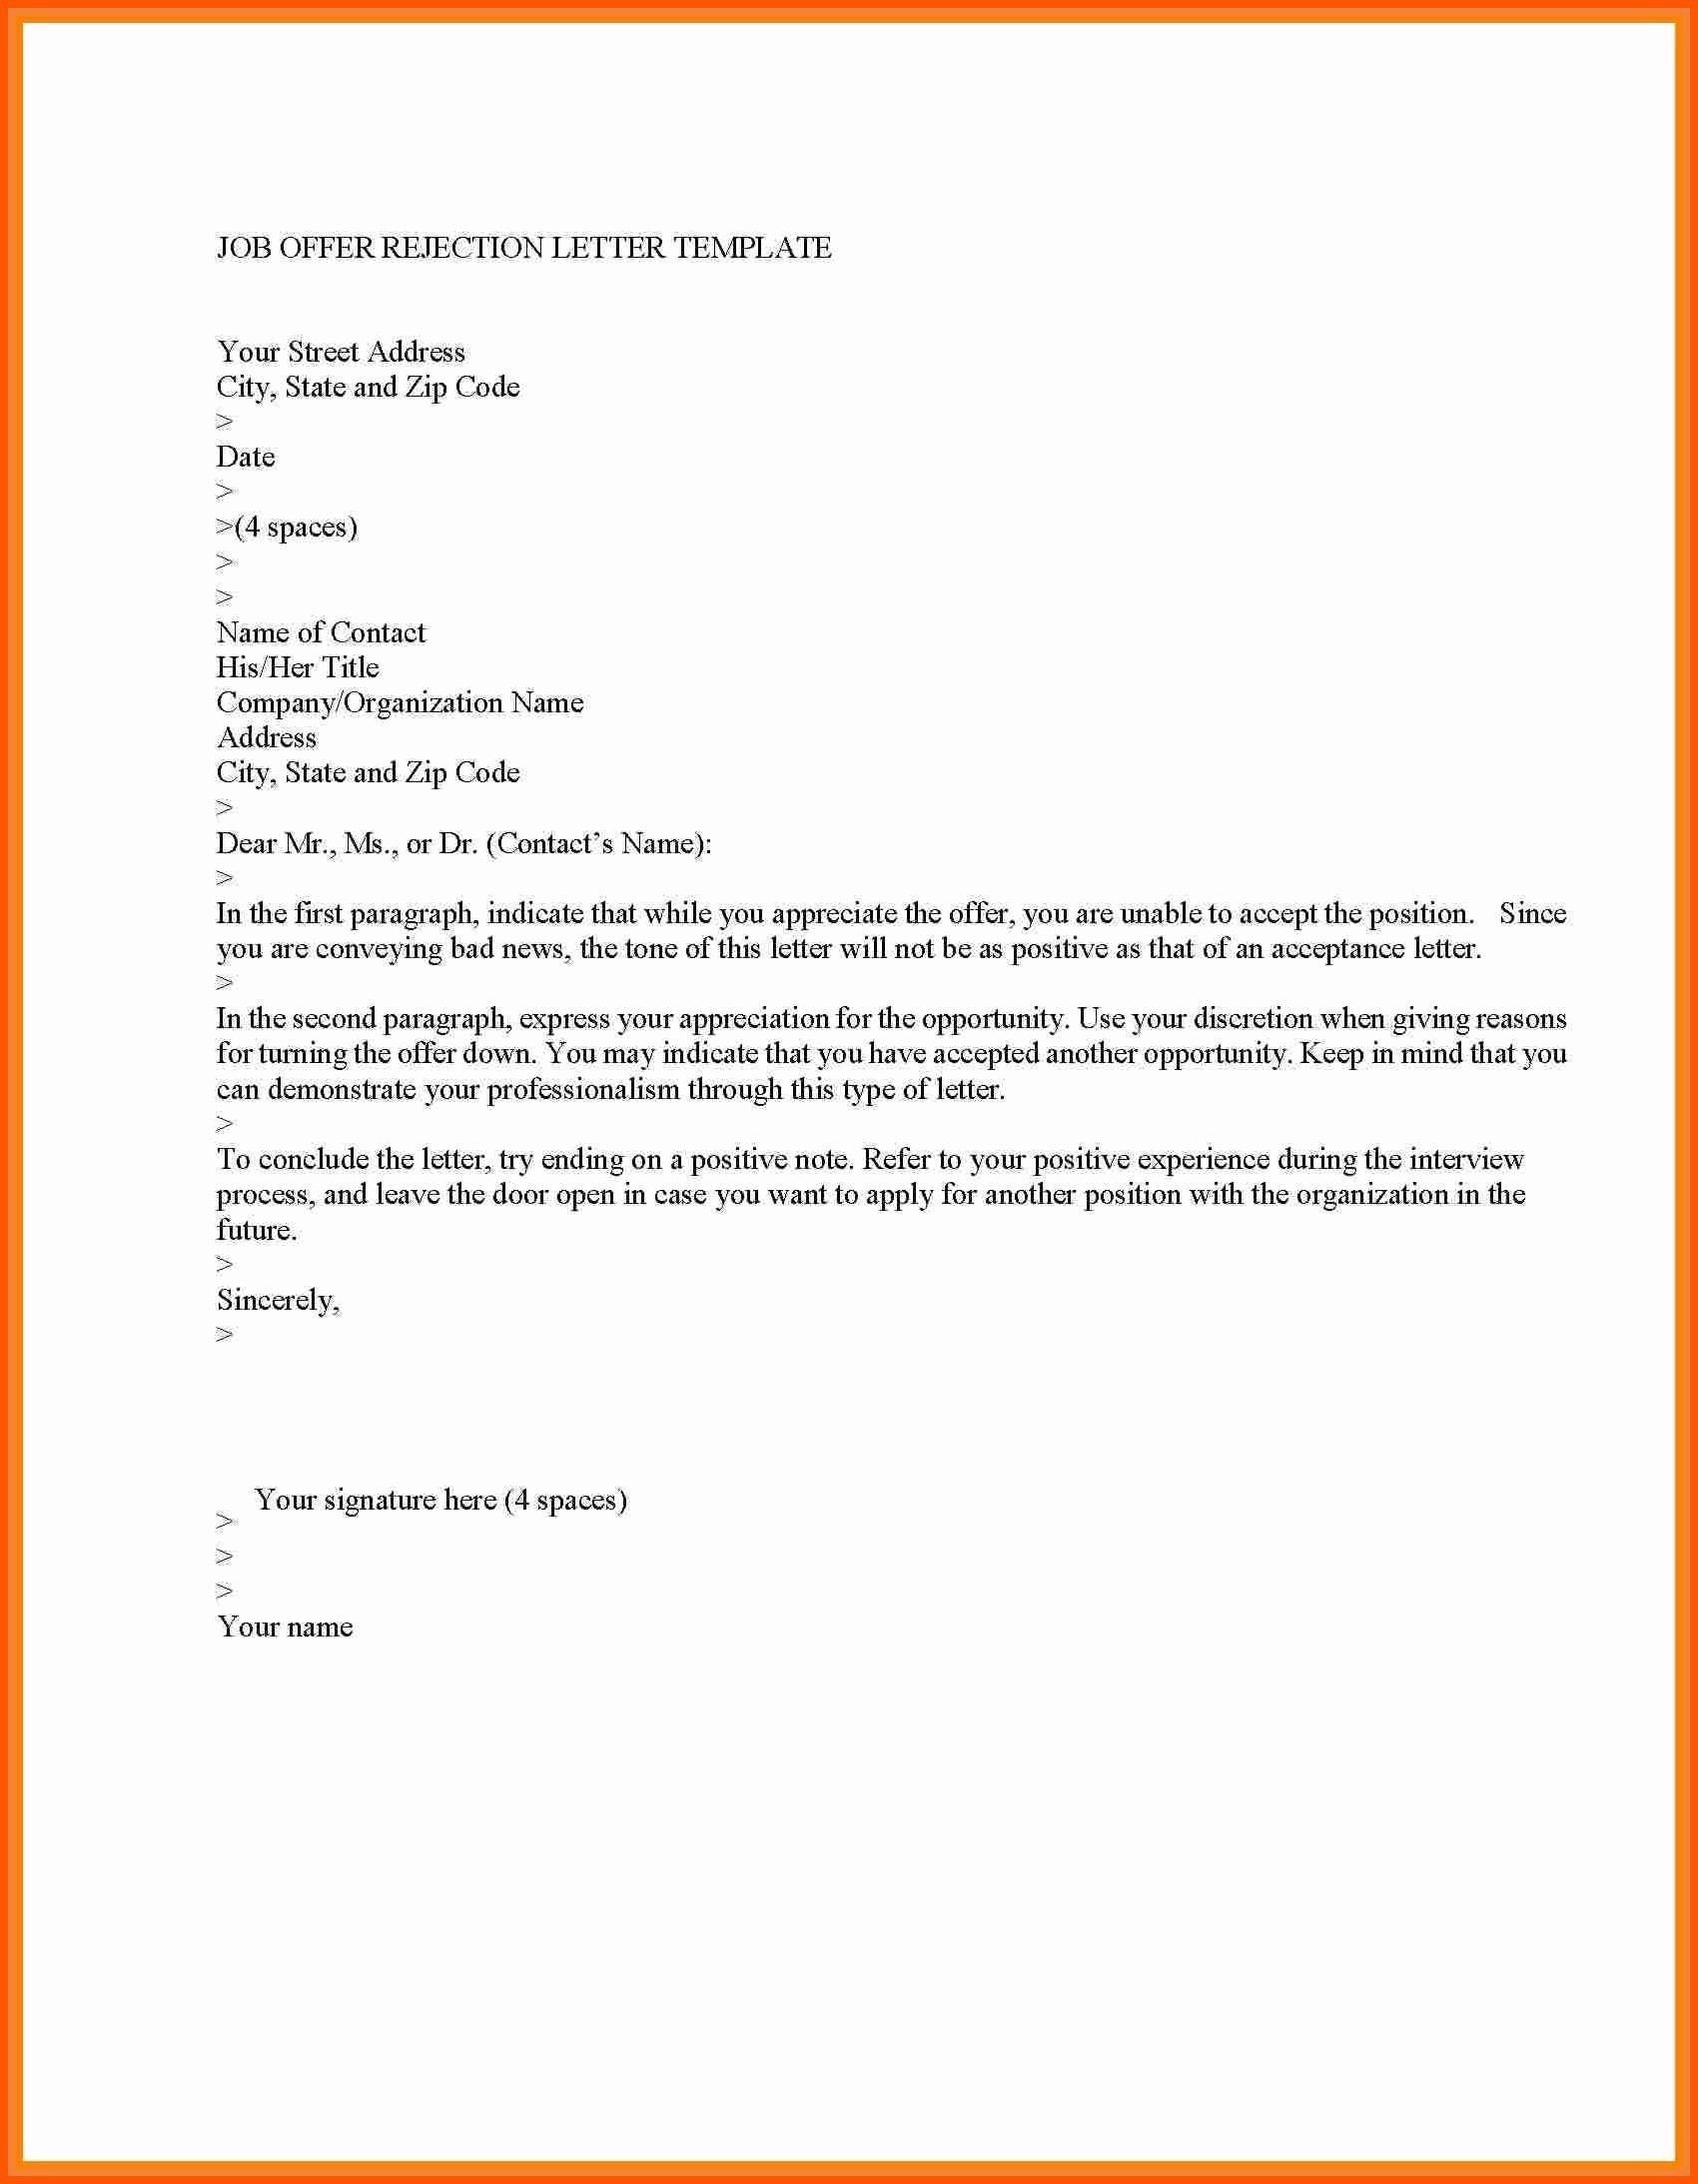 New Letter to Accept Job Offer Sample you can download for